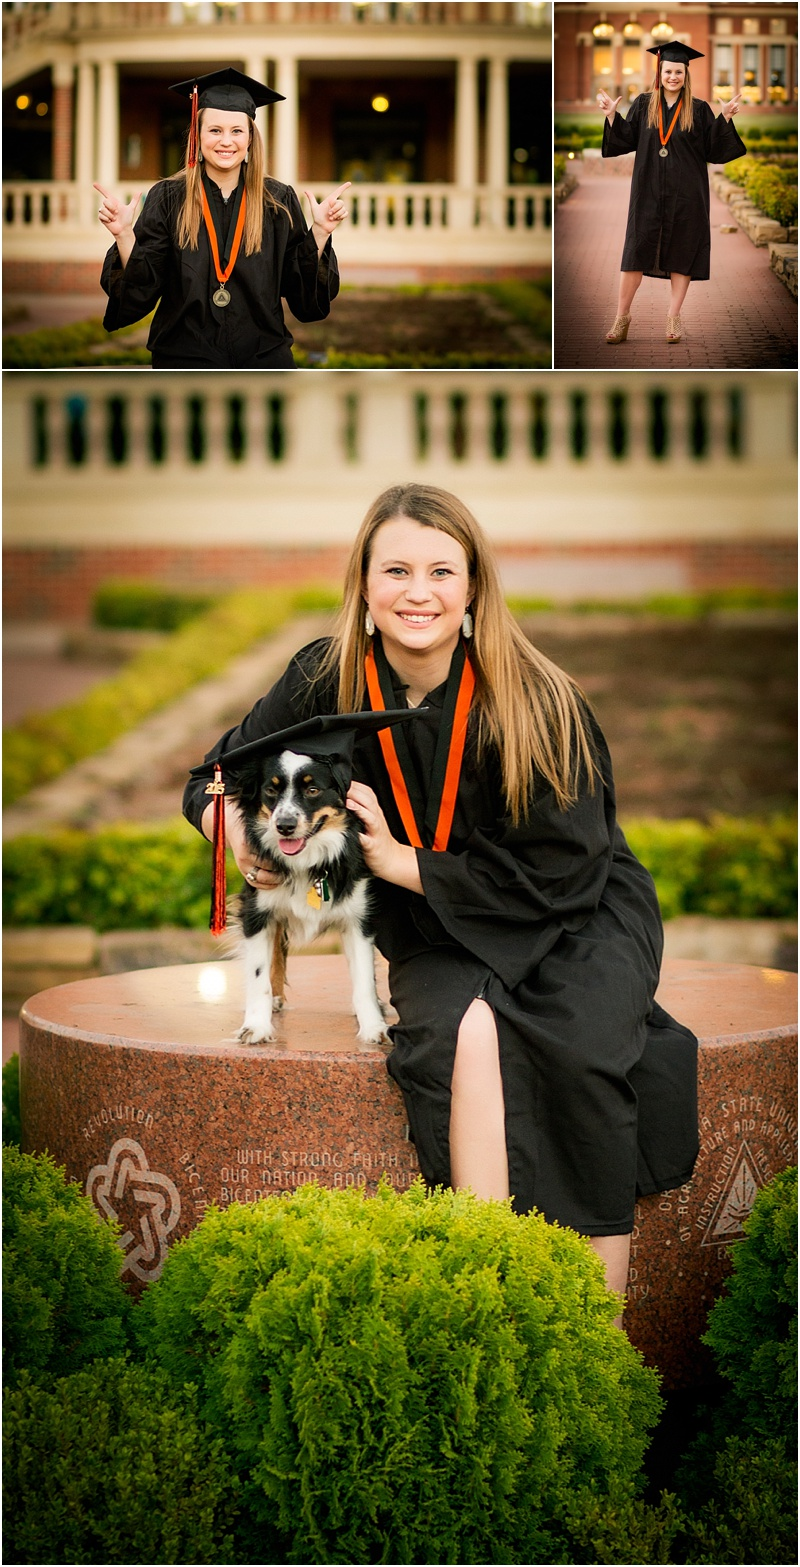 stillwater oklahoma 74074 senior portrait photographer captured by karly cloa 6